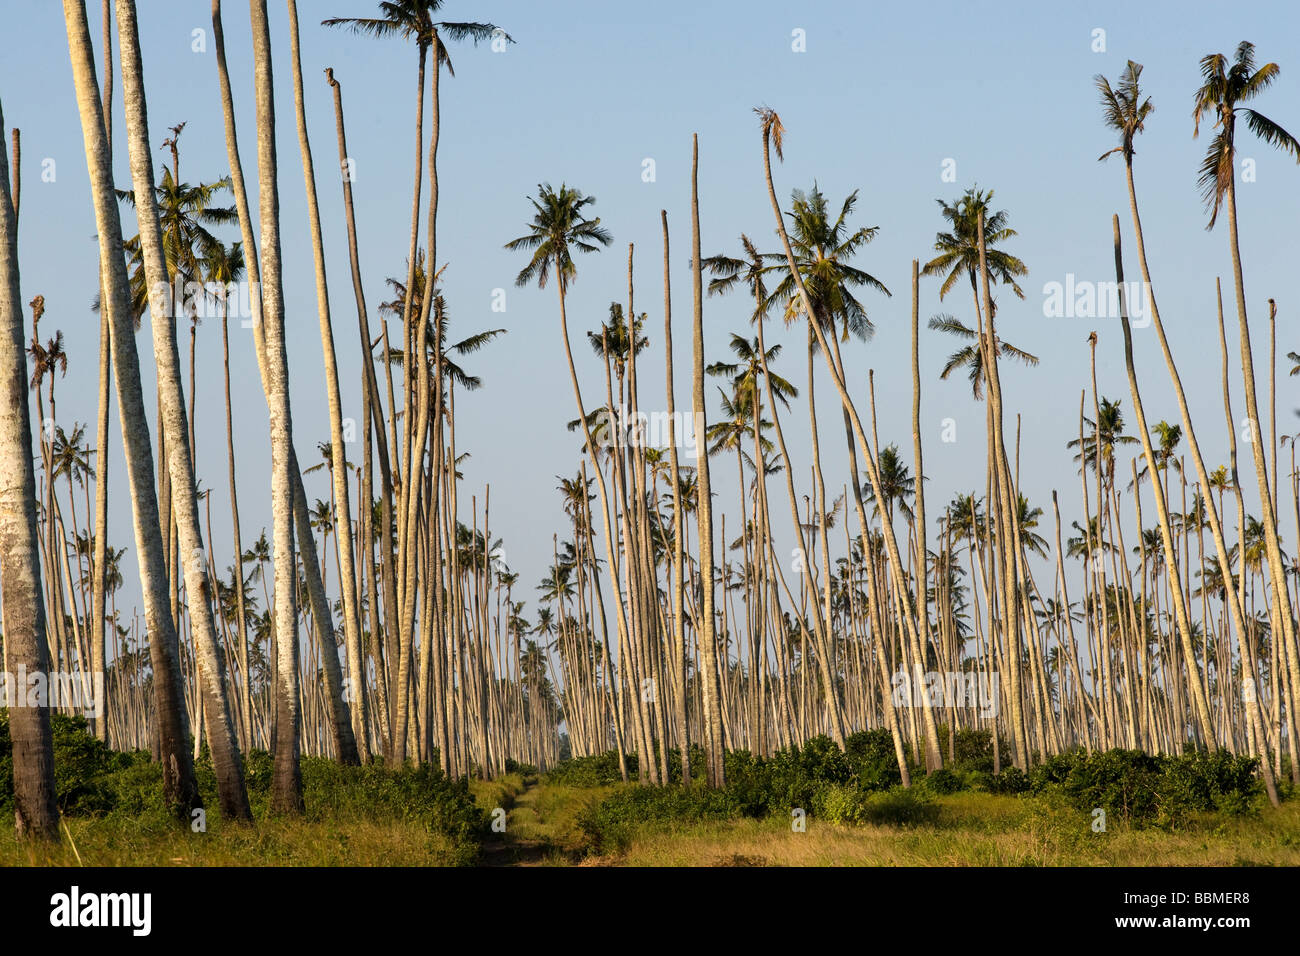 Coconut palms dying of a disease Quelimane Mozambique - Stock Image